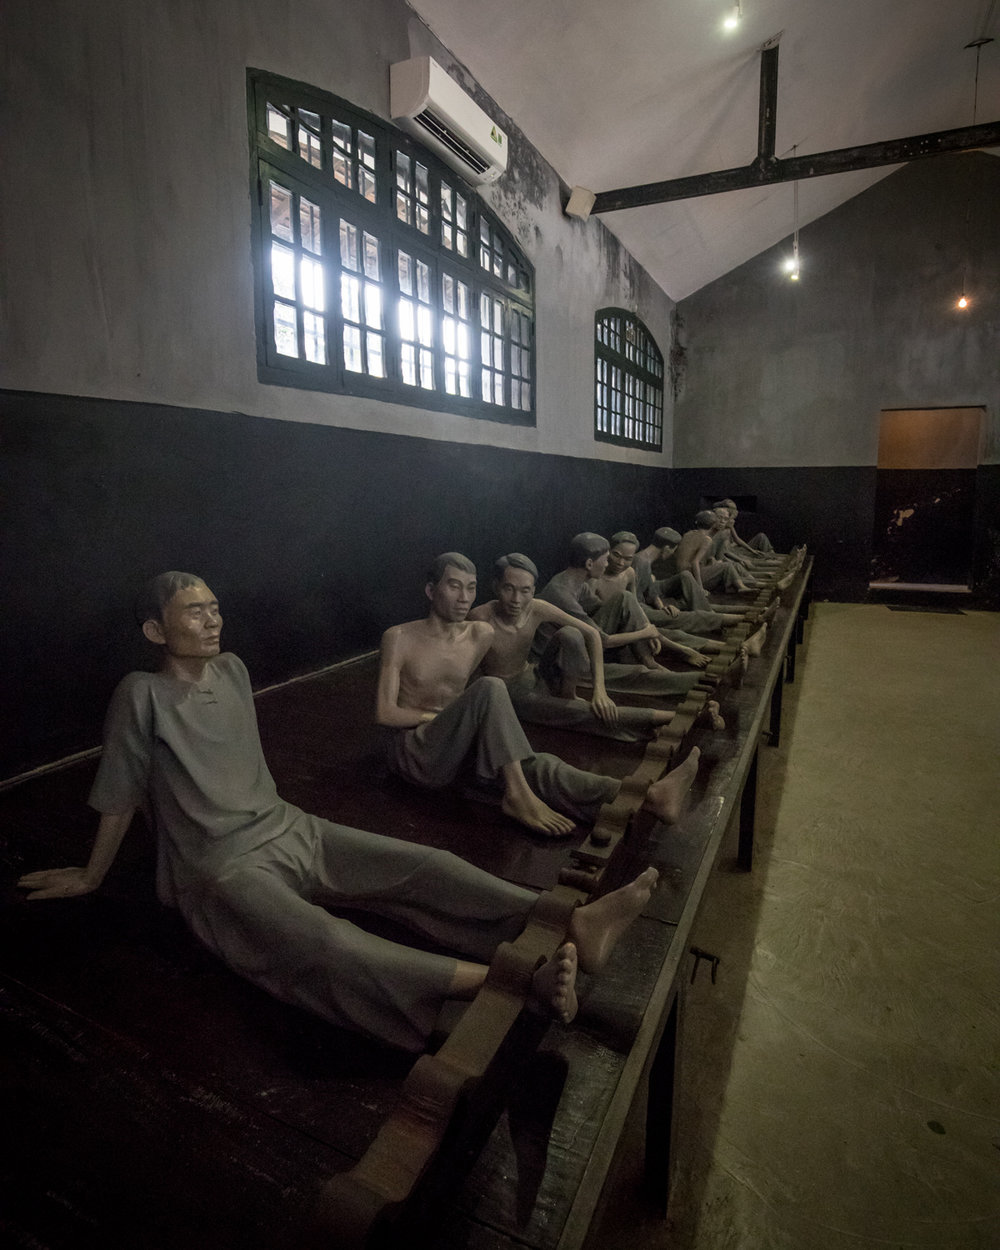 The Vietnamese prisoners of Hoa Lo under French rule.